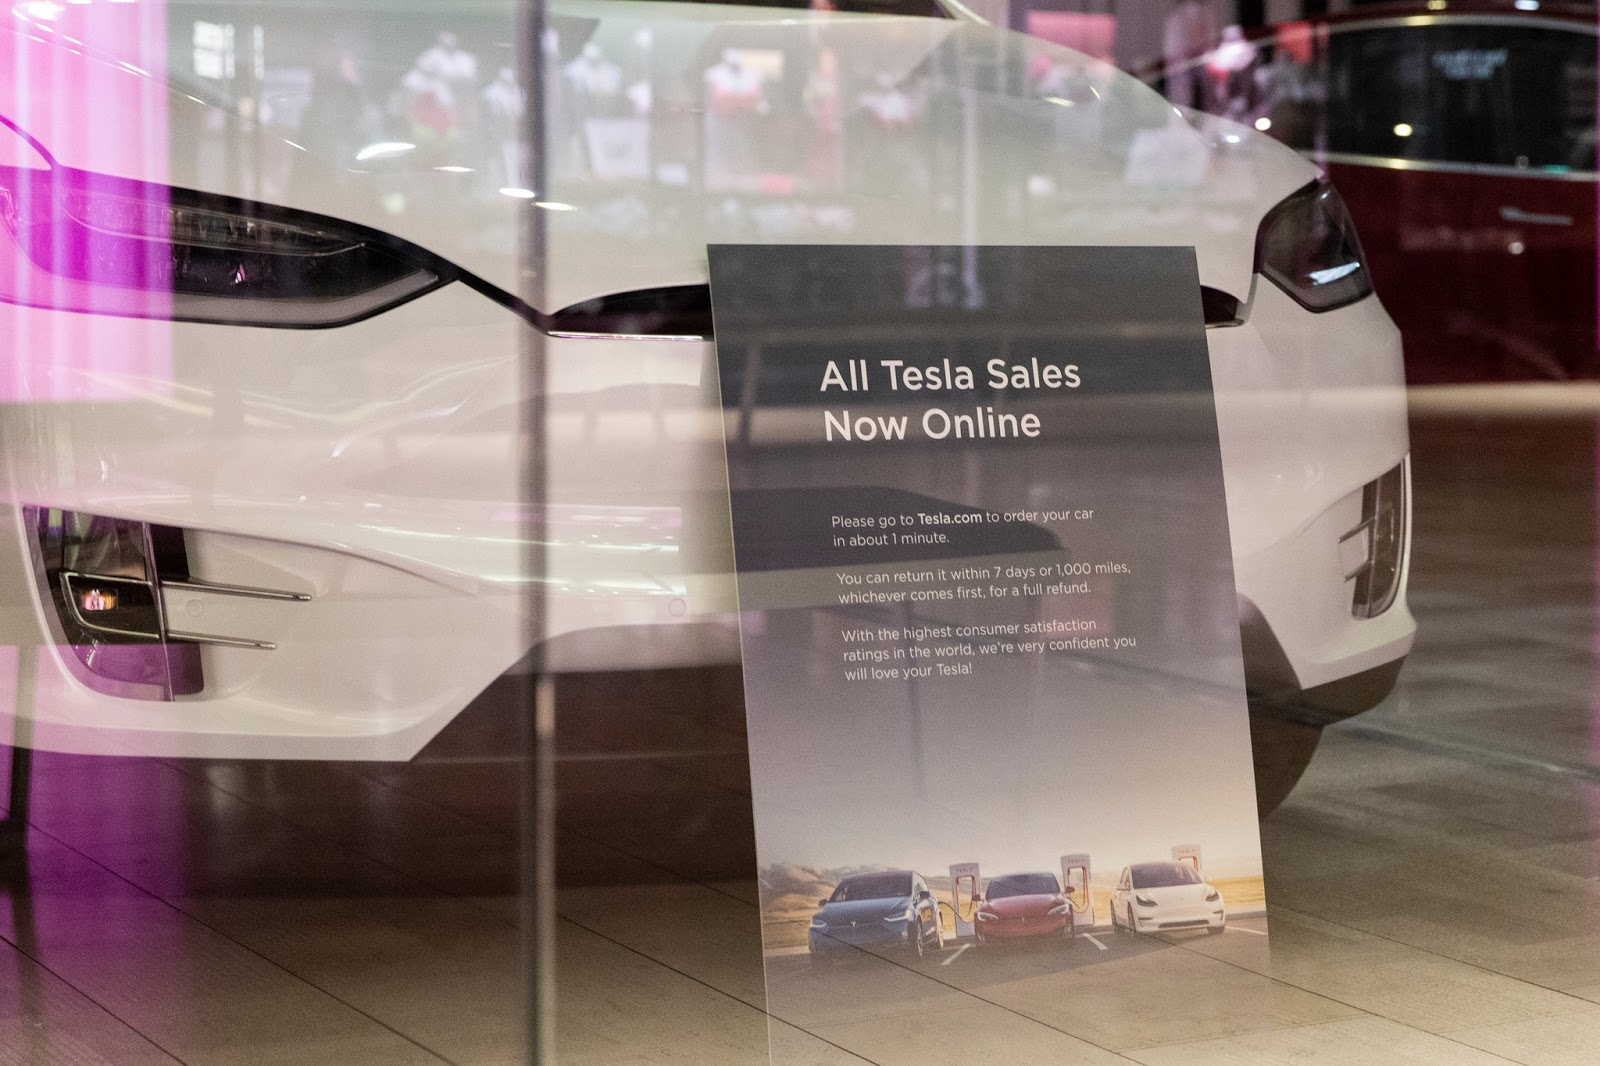 Tesla CEO Musk said that over 75 percent of Model 3 cars were already ordered online. Photo:  Laura Buckman - The New York Times